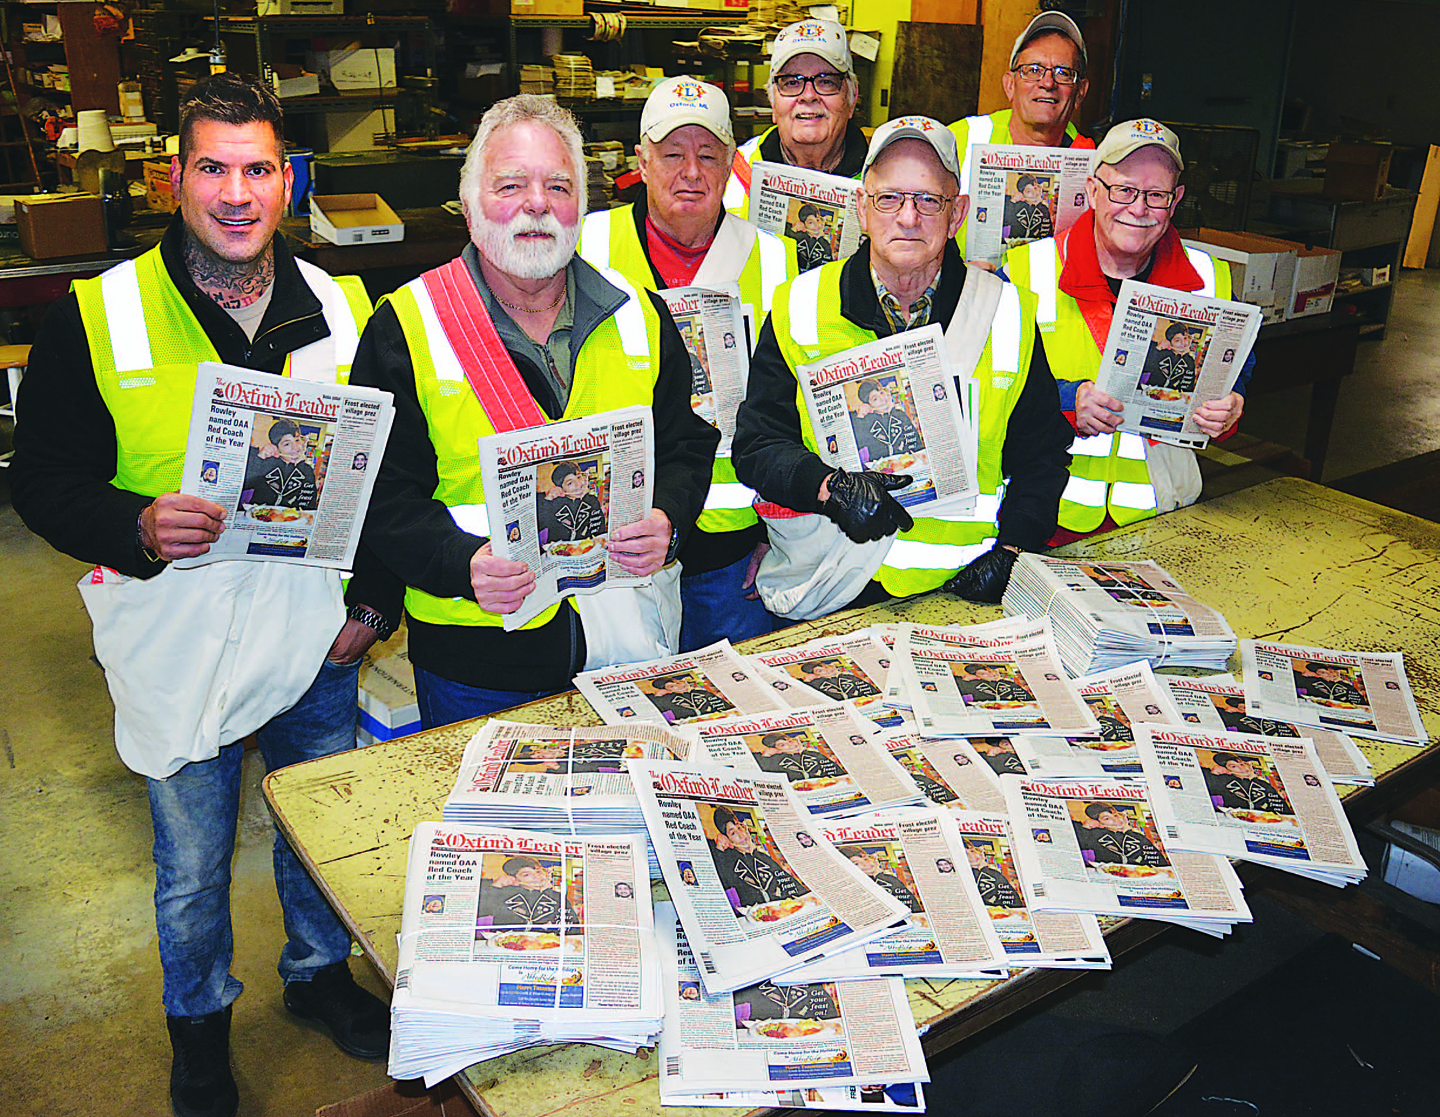 Members of the Oxford Lions Club will be on the street from Thursday, Nov. 29 to Saturday, Dec. 1 selling Goodfellow newspapers to raise money to fill Christmas baskets with food, clothes and toys for local folks in need. Photo by C.J. Carnacchio.